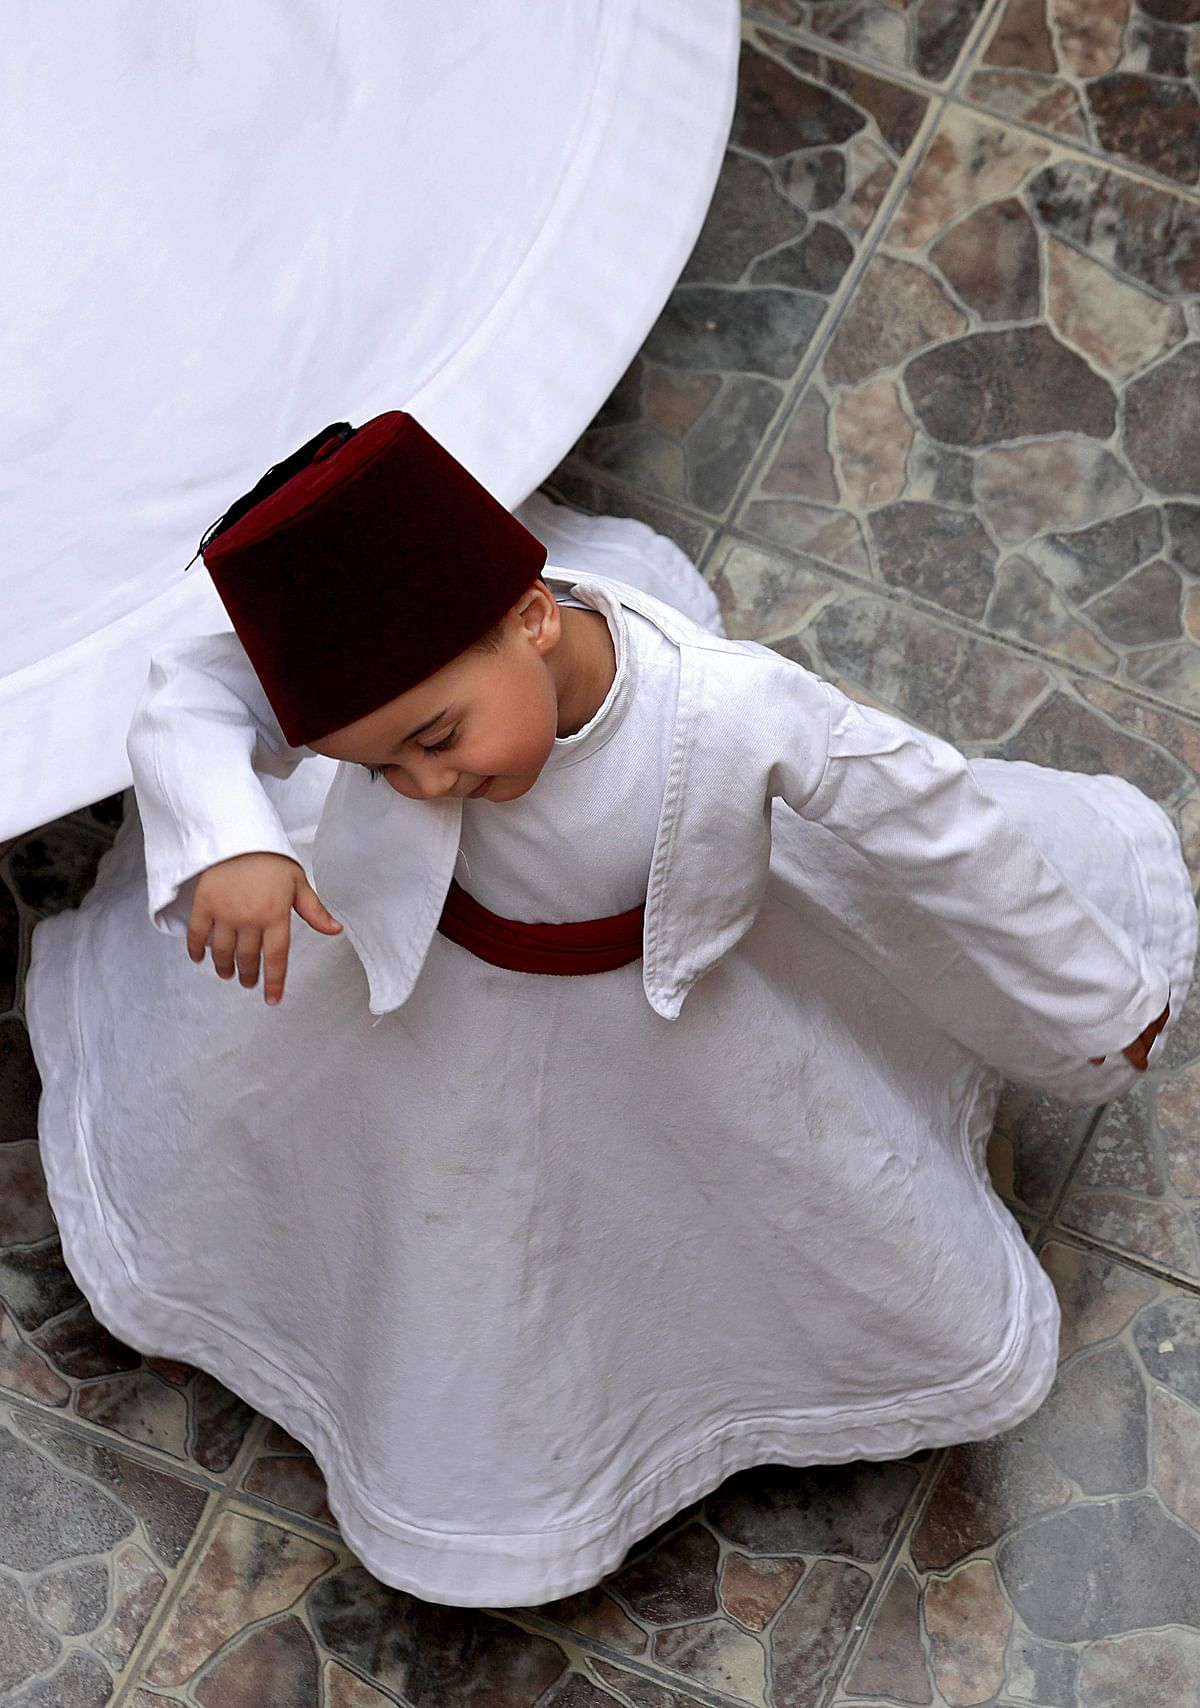 Three-year-old Sufi Dervish dancer Anas al-Kharrat dances at his home in the Shahgur district of the old city of Syrias capital Damascus on May 6, 2021.